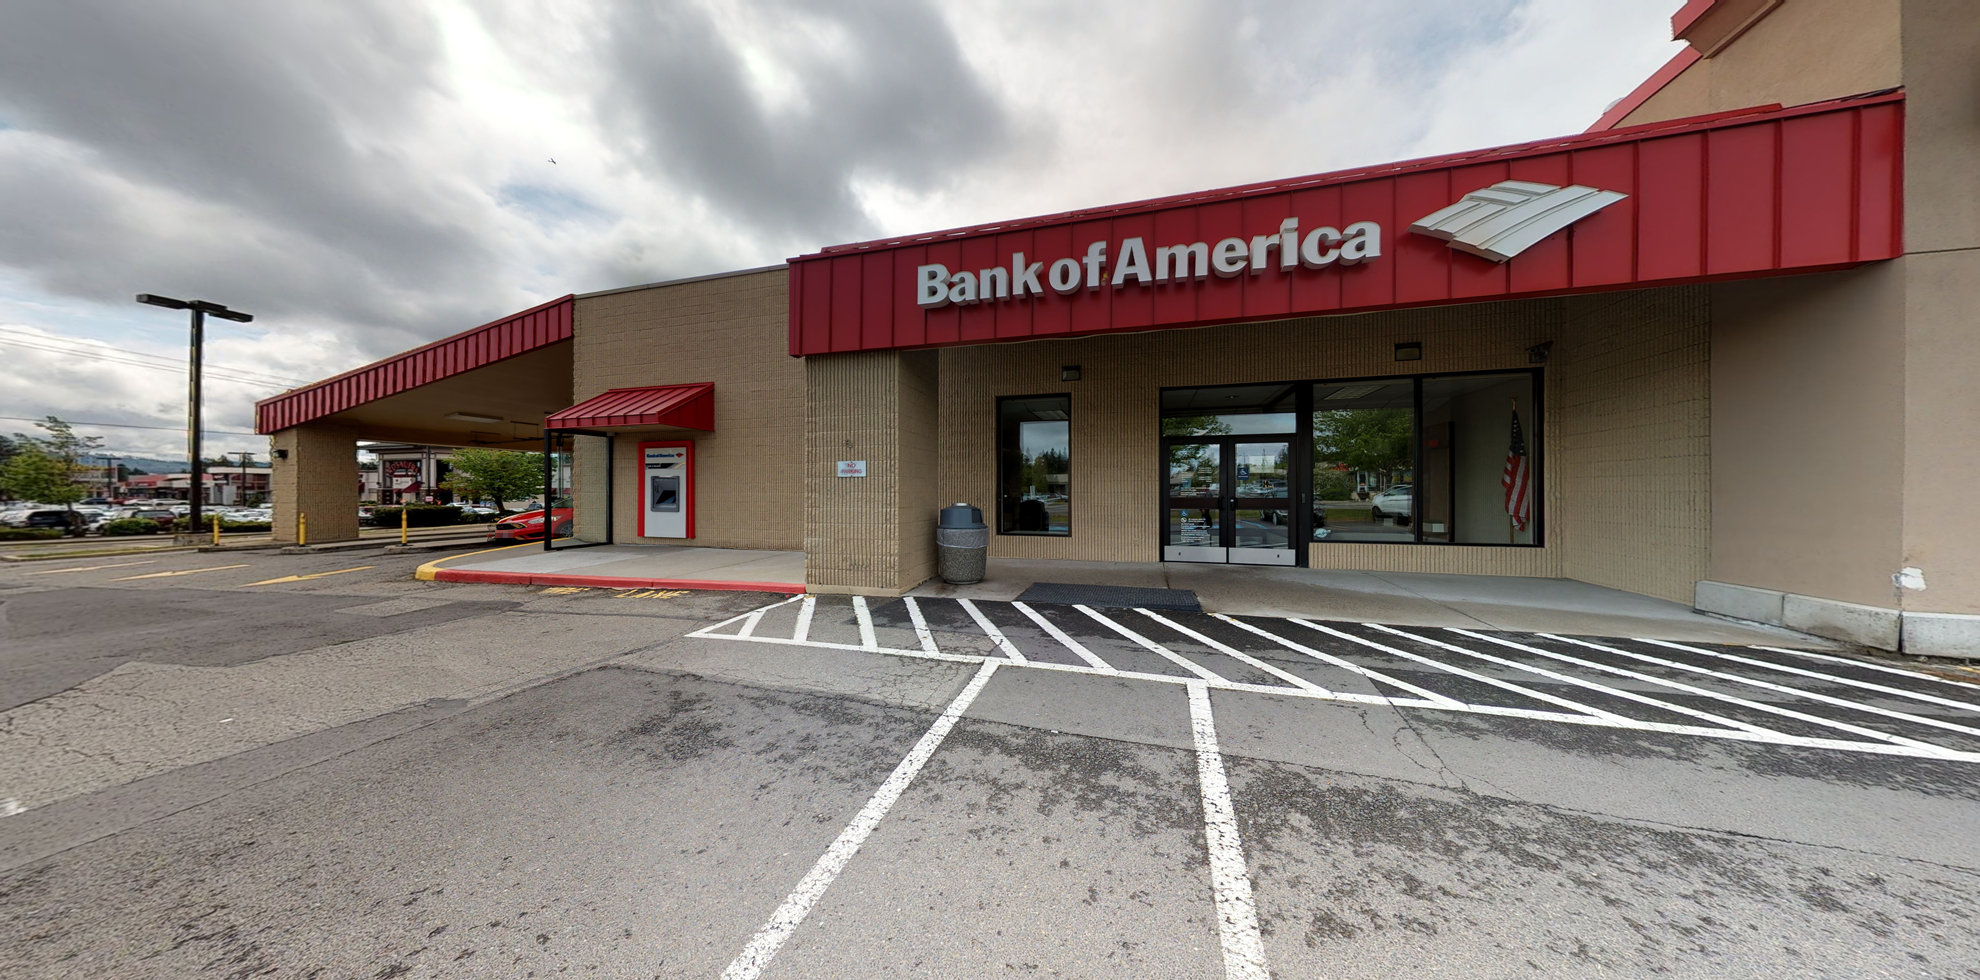 Bank of America financial center with drive-thru ATM and teller | 2504 E 29th Ave, Spokane, WA 99223